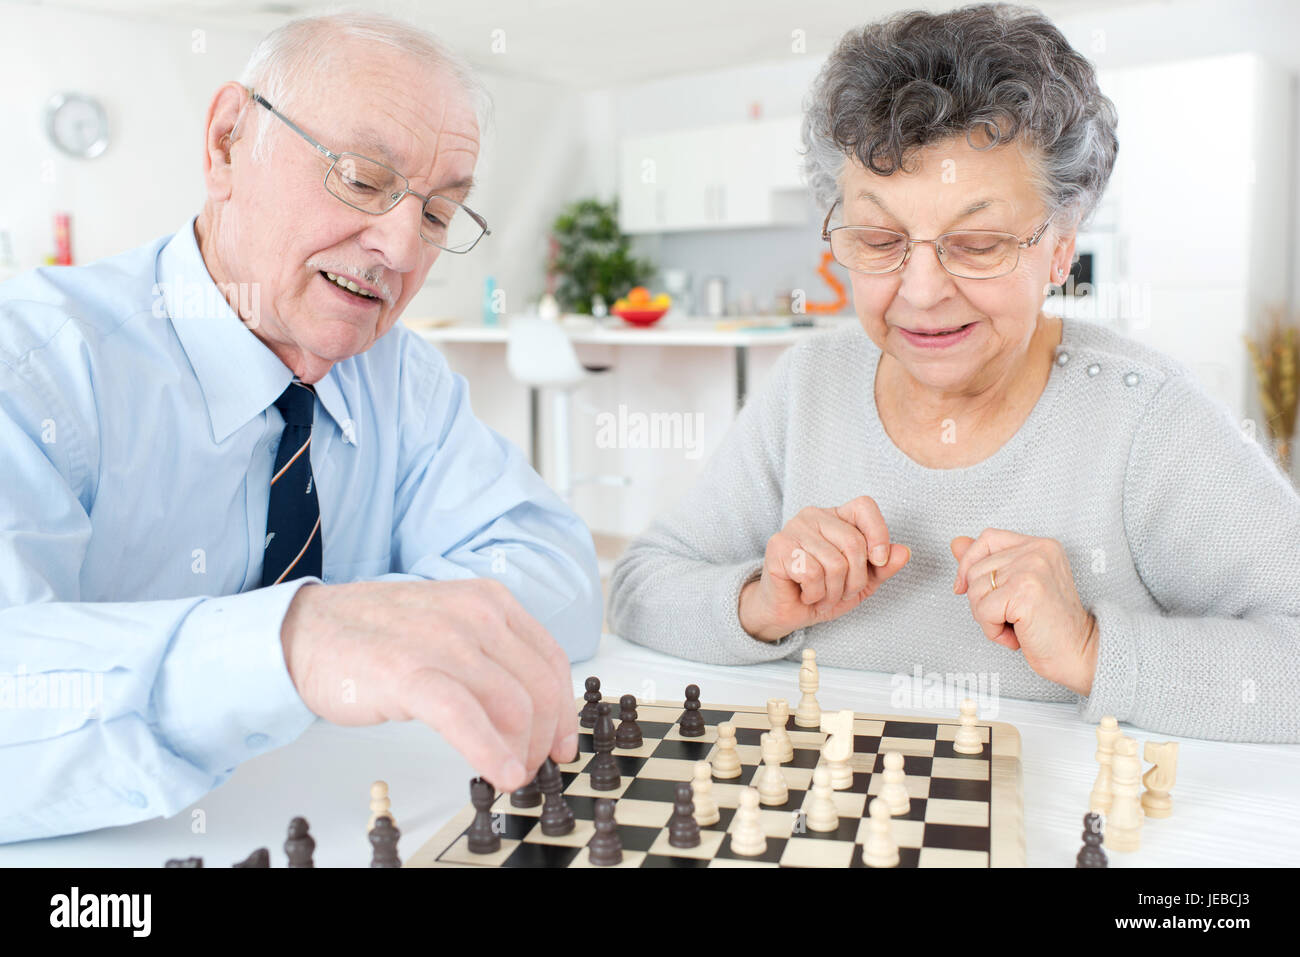 Married Couple Playing Chess At Home Imagenes De Stock Married